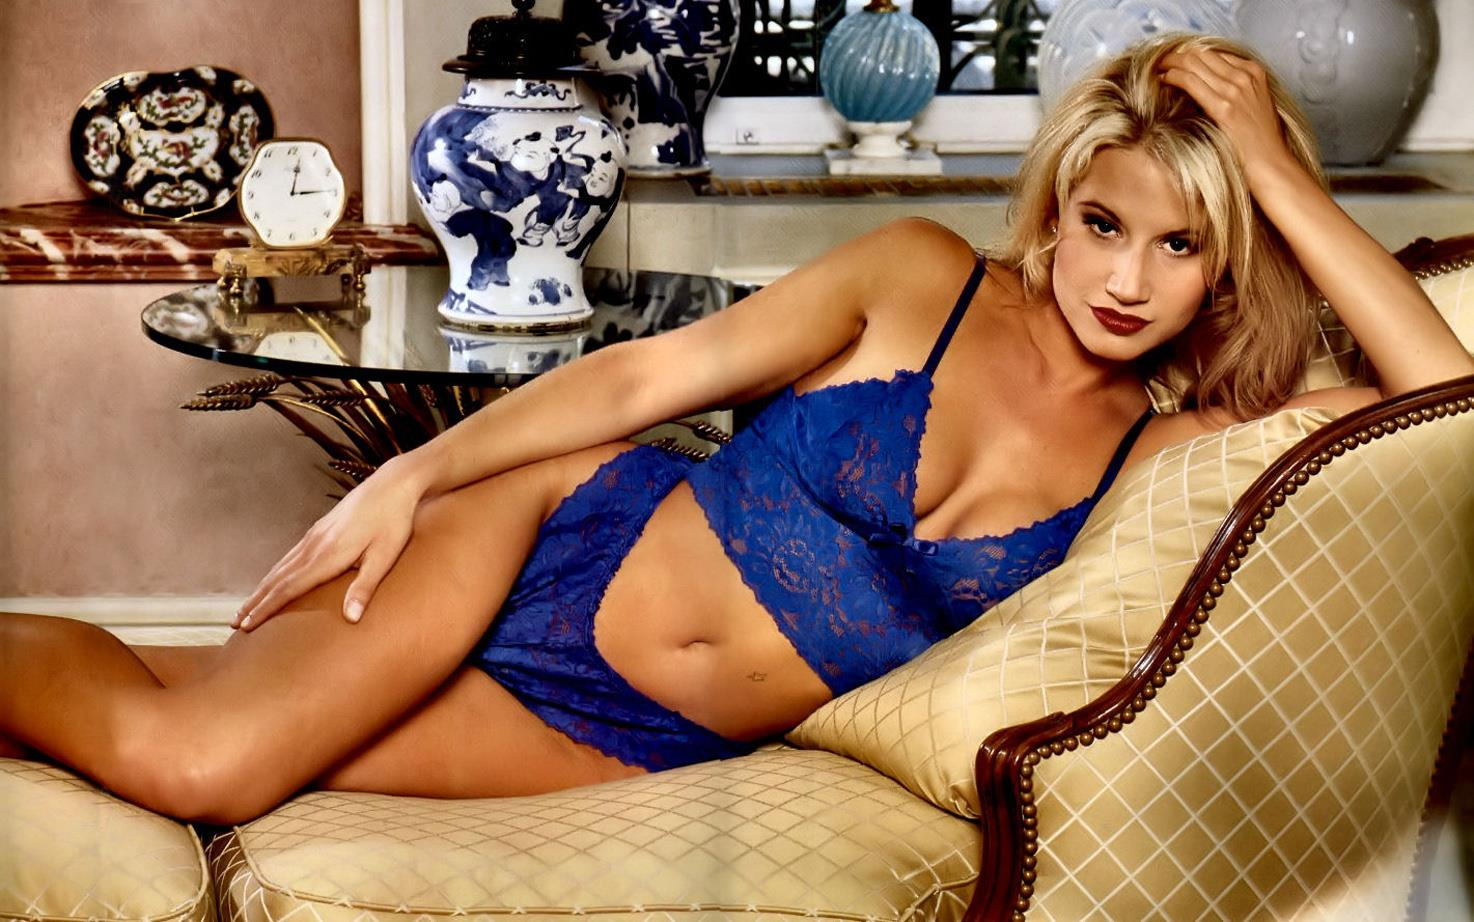 Tammy Lynn Sytch in lingerie